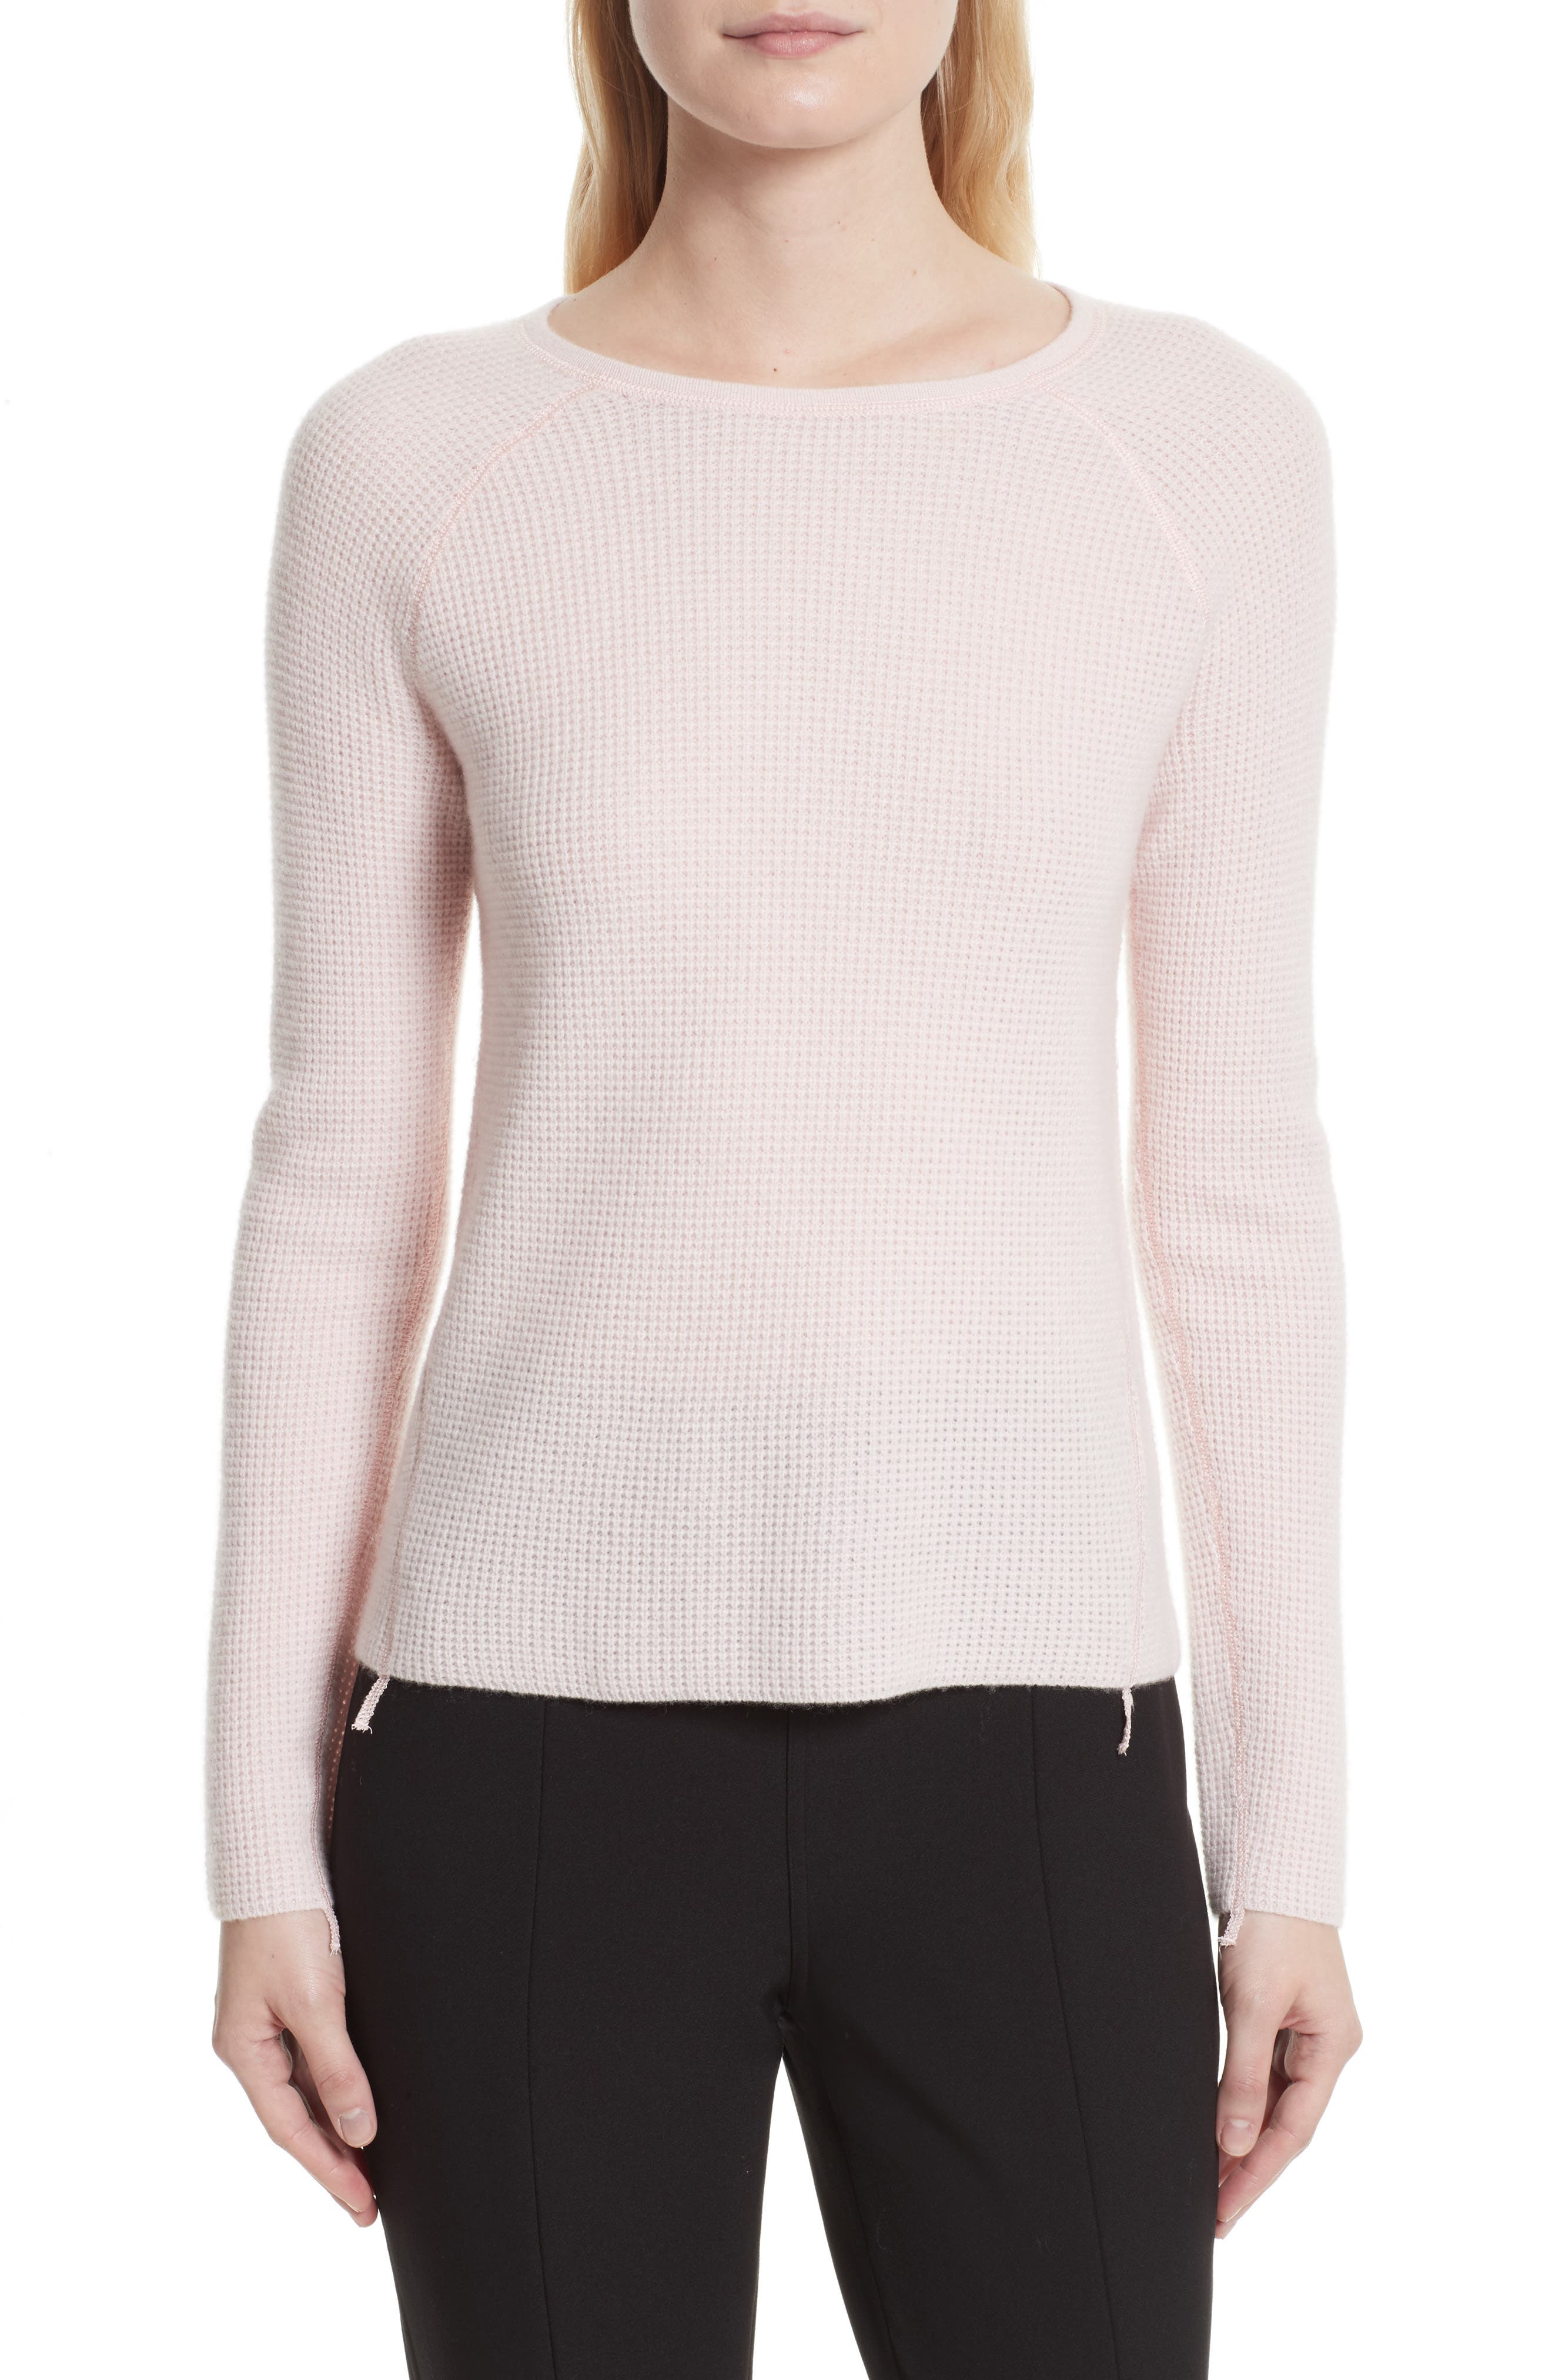 Main Image - Elizabeth and James Karina Waffle Knit Cashmere Sweater